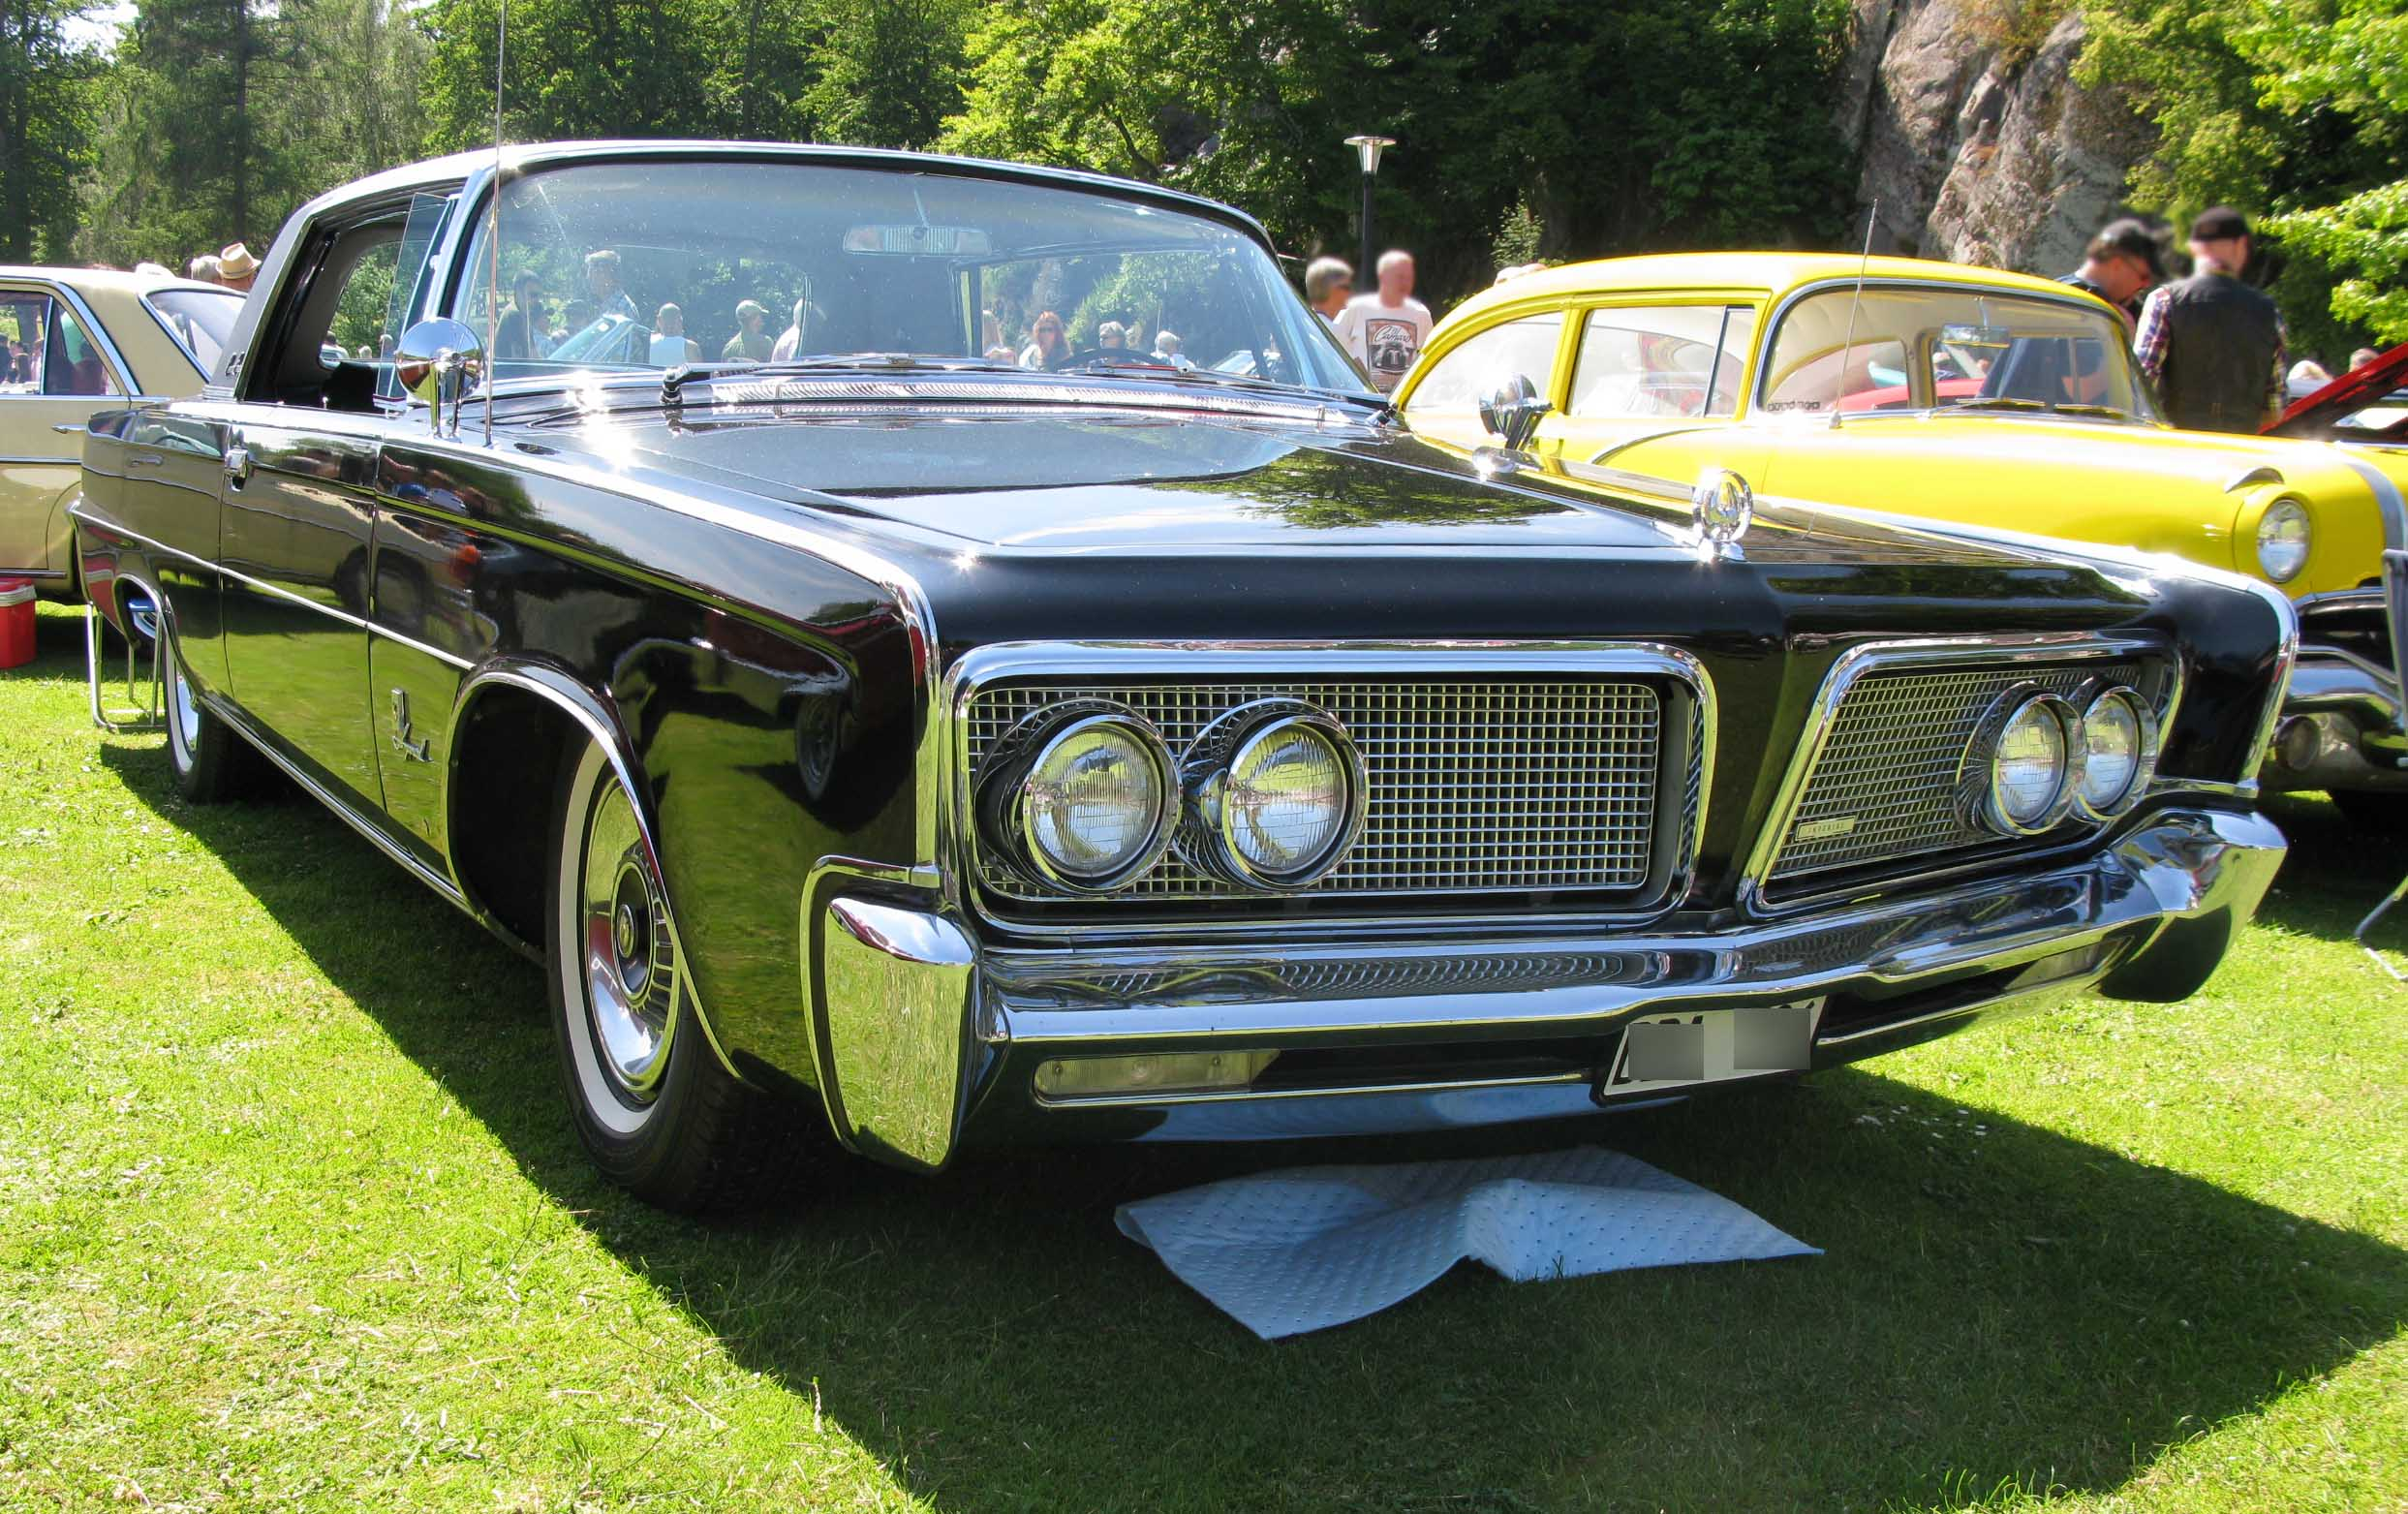 File:1964 Imperial fr.jpg - Wikimedia Commons